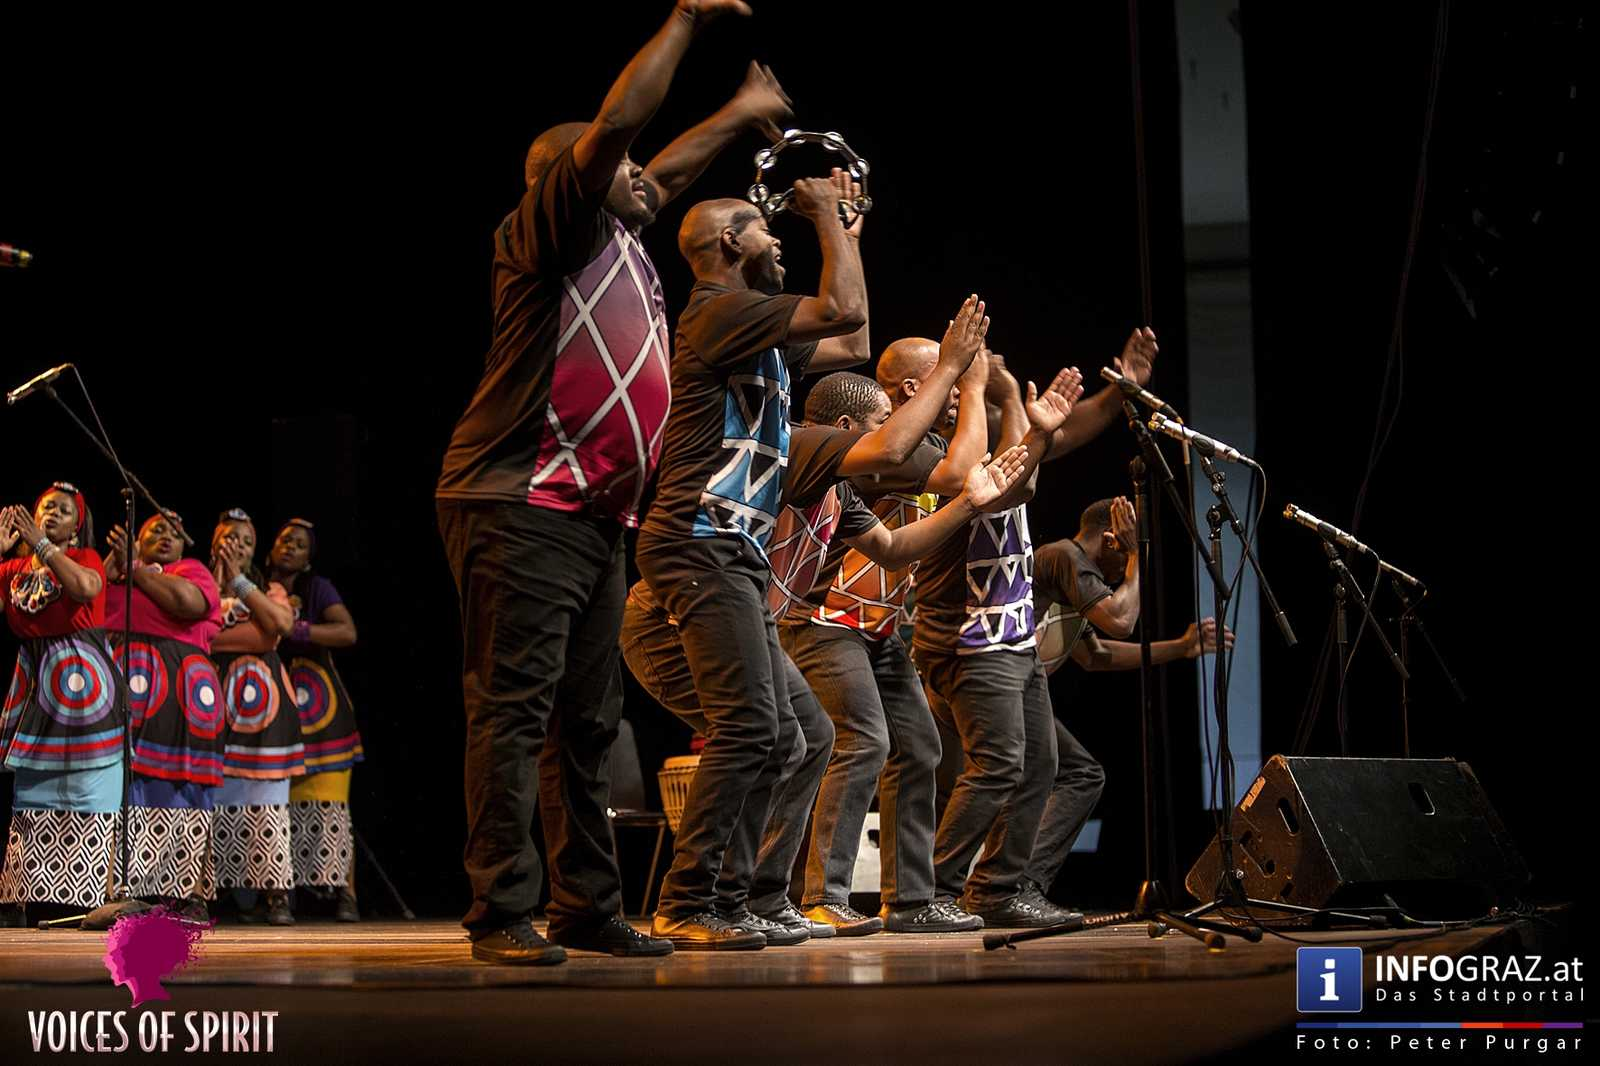 soweto gospel choir internationales chorfestival statdthalle graz voices of spirit eroeffnung festivals 2016 025